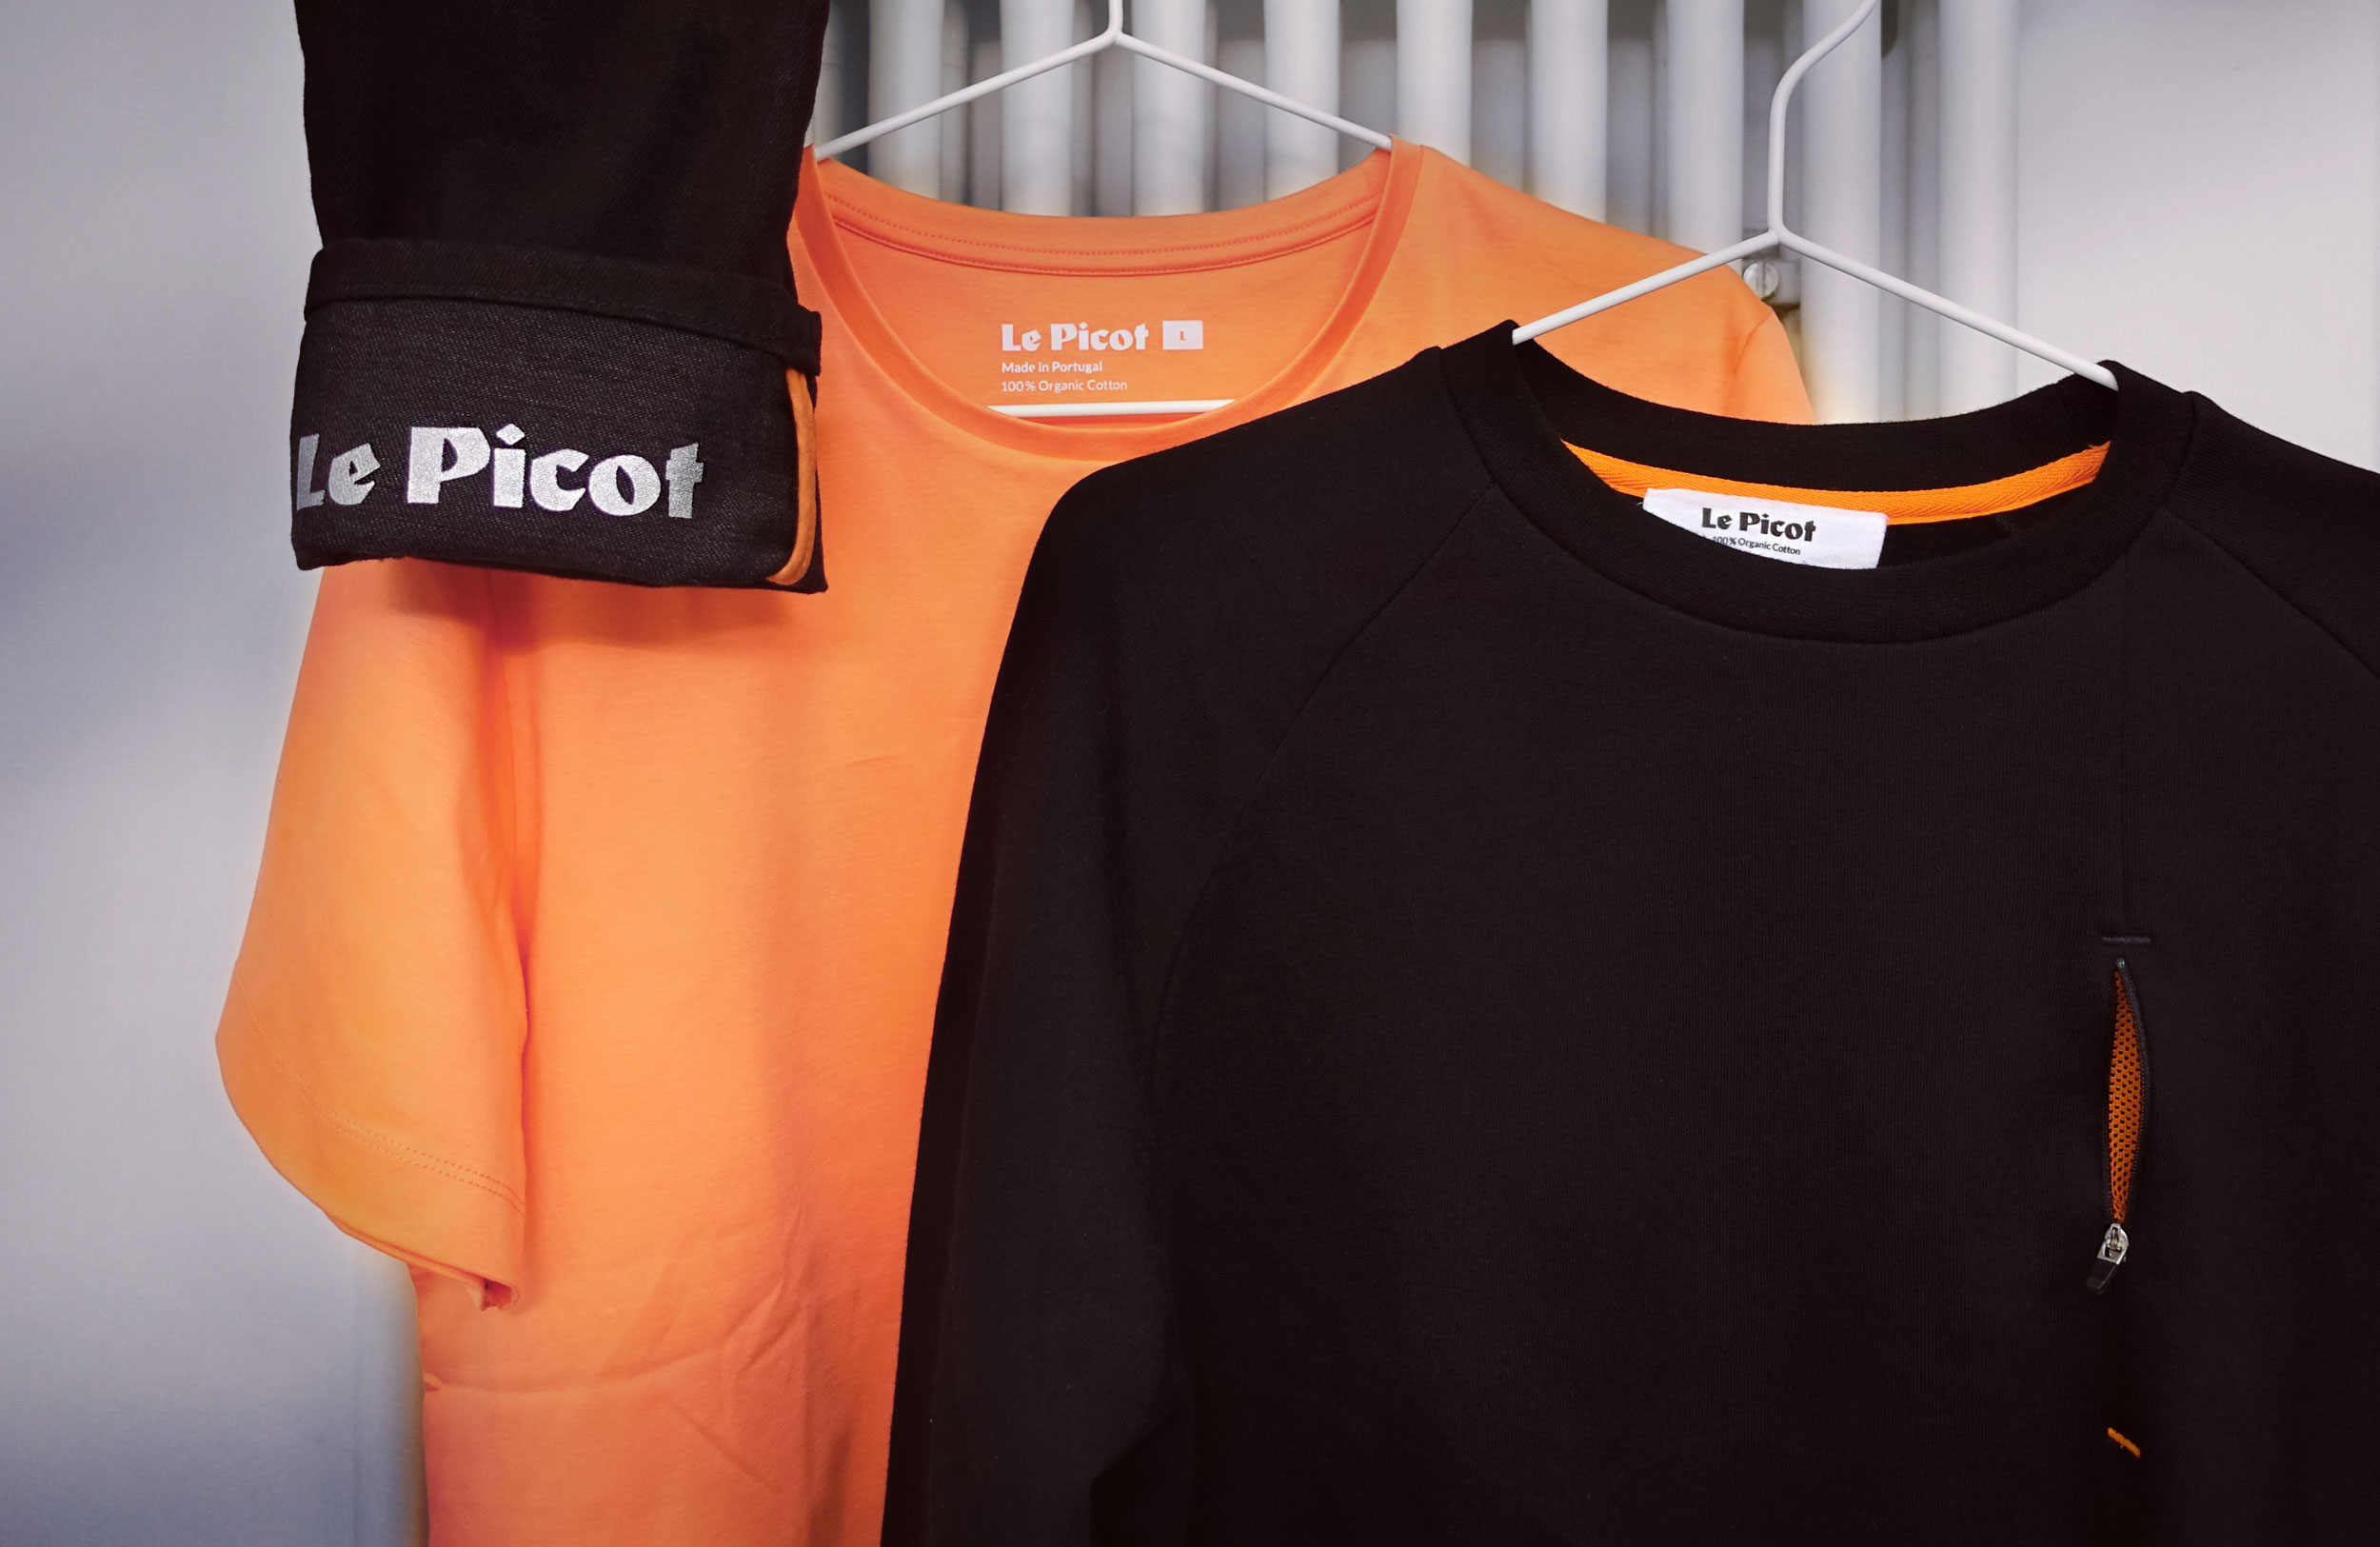 In the check: stylish, functional and sustainable cycling fashion by Le Picot